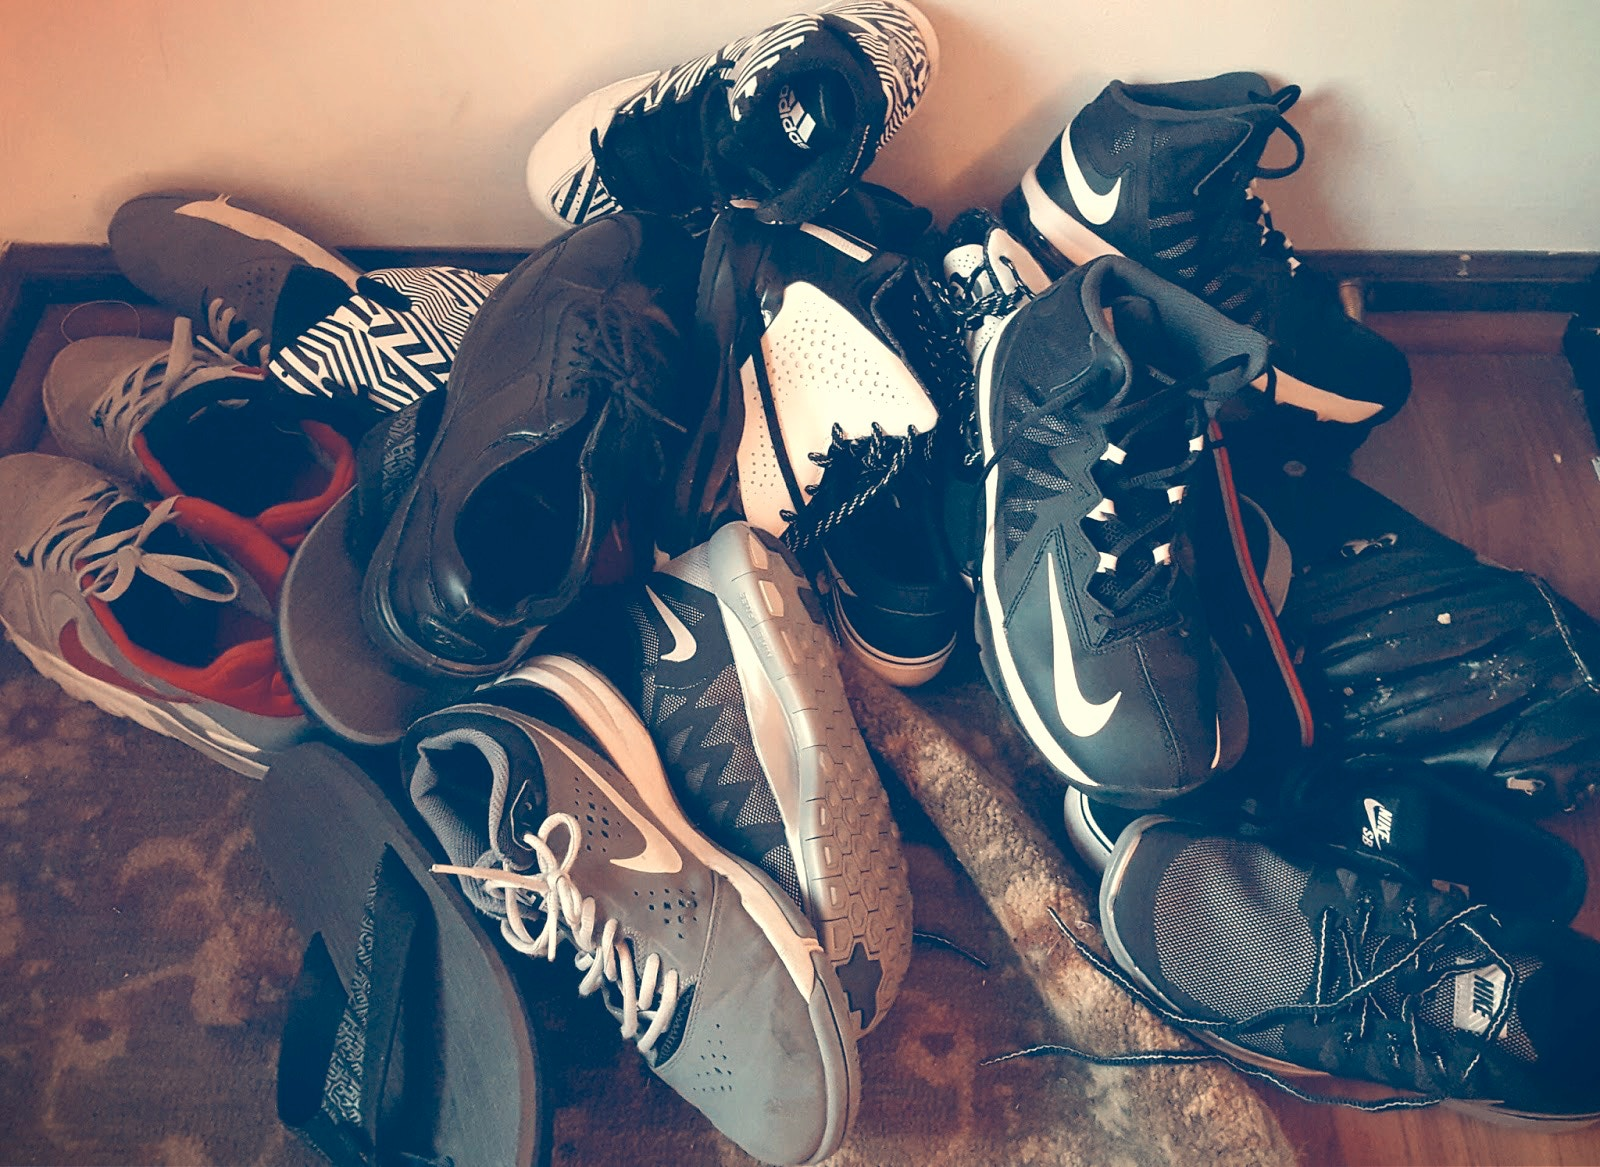 untidy stack of shoes thrown